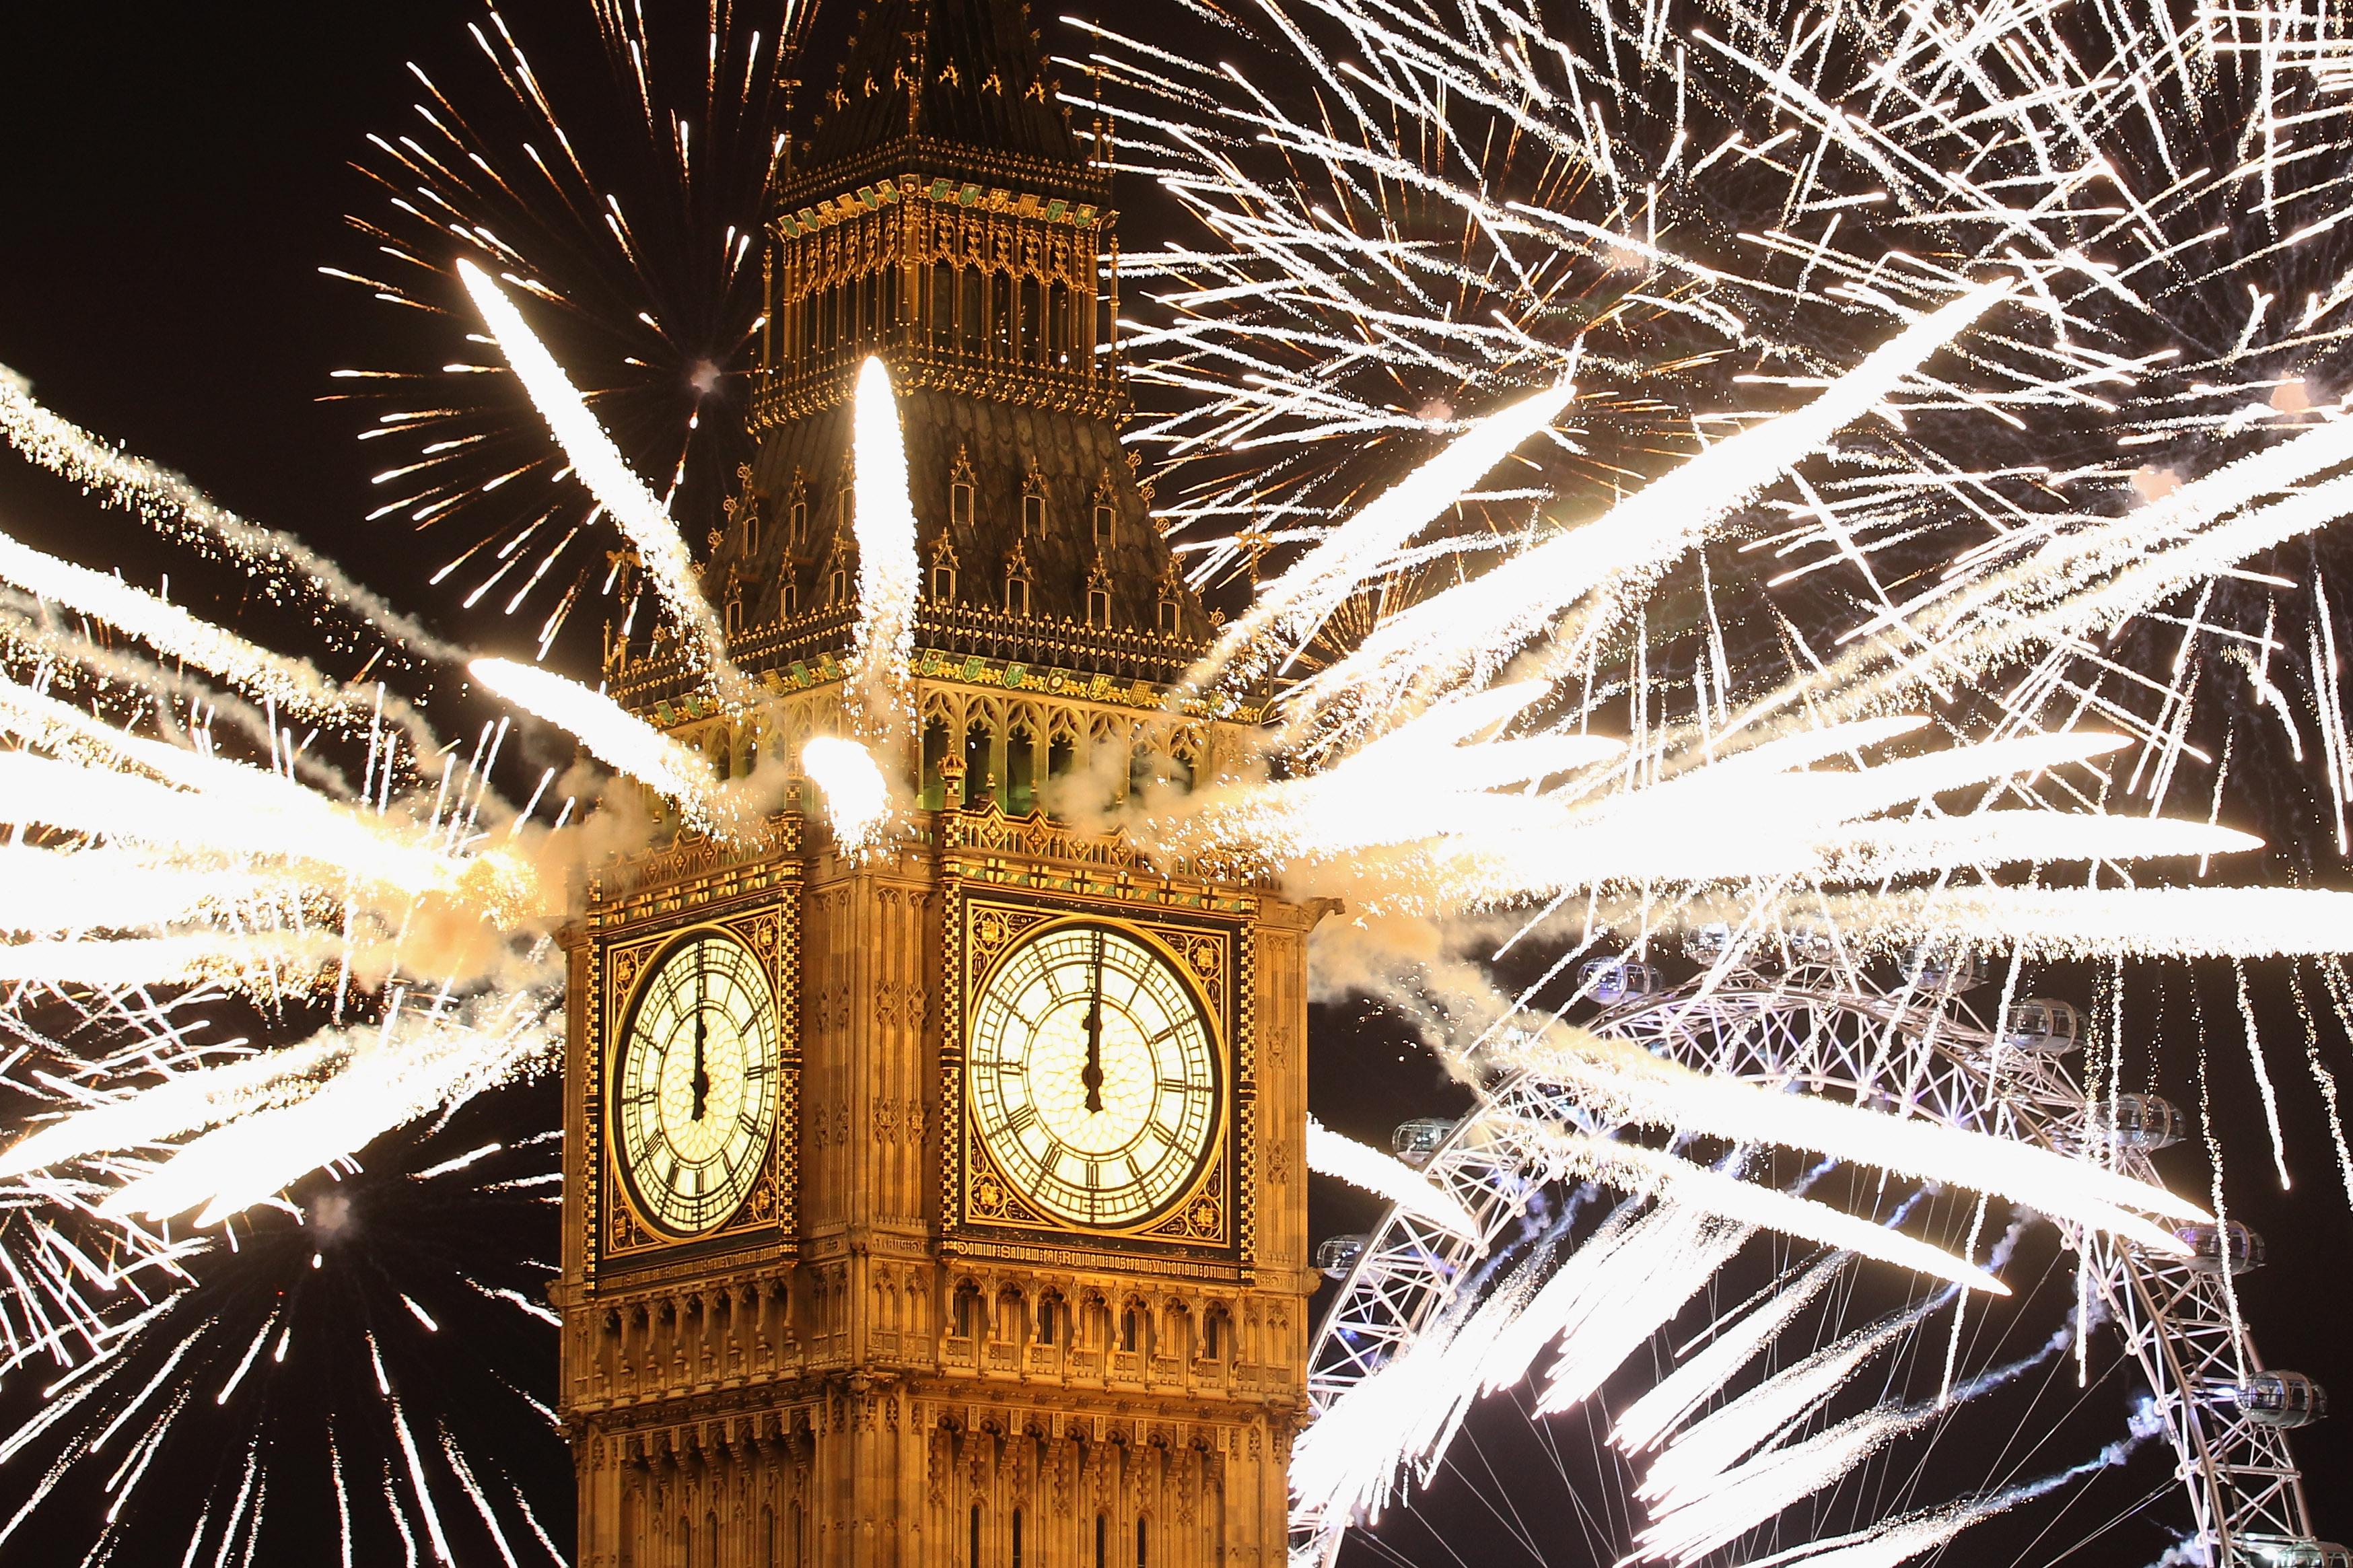 The 15 things that will probably happen when you decide to go out for New Year's Eve